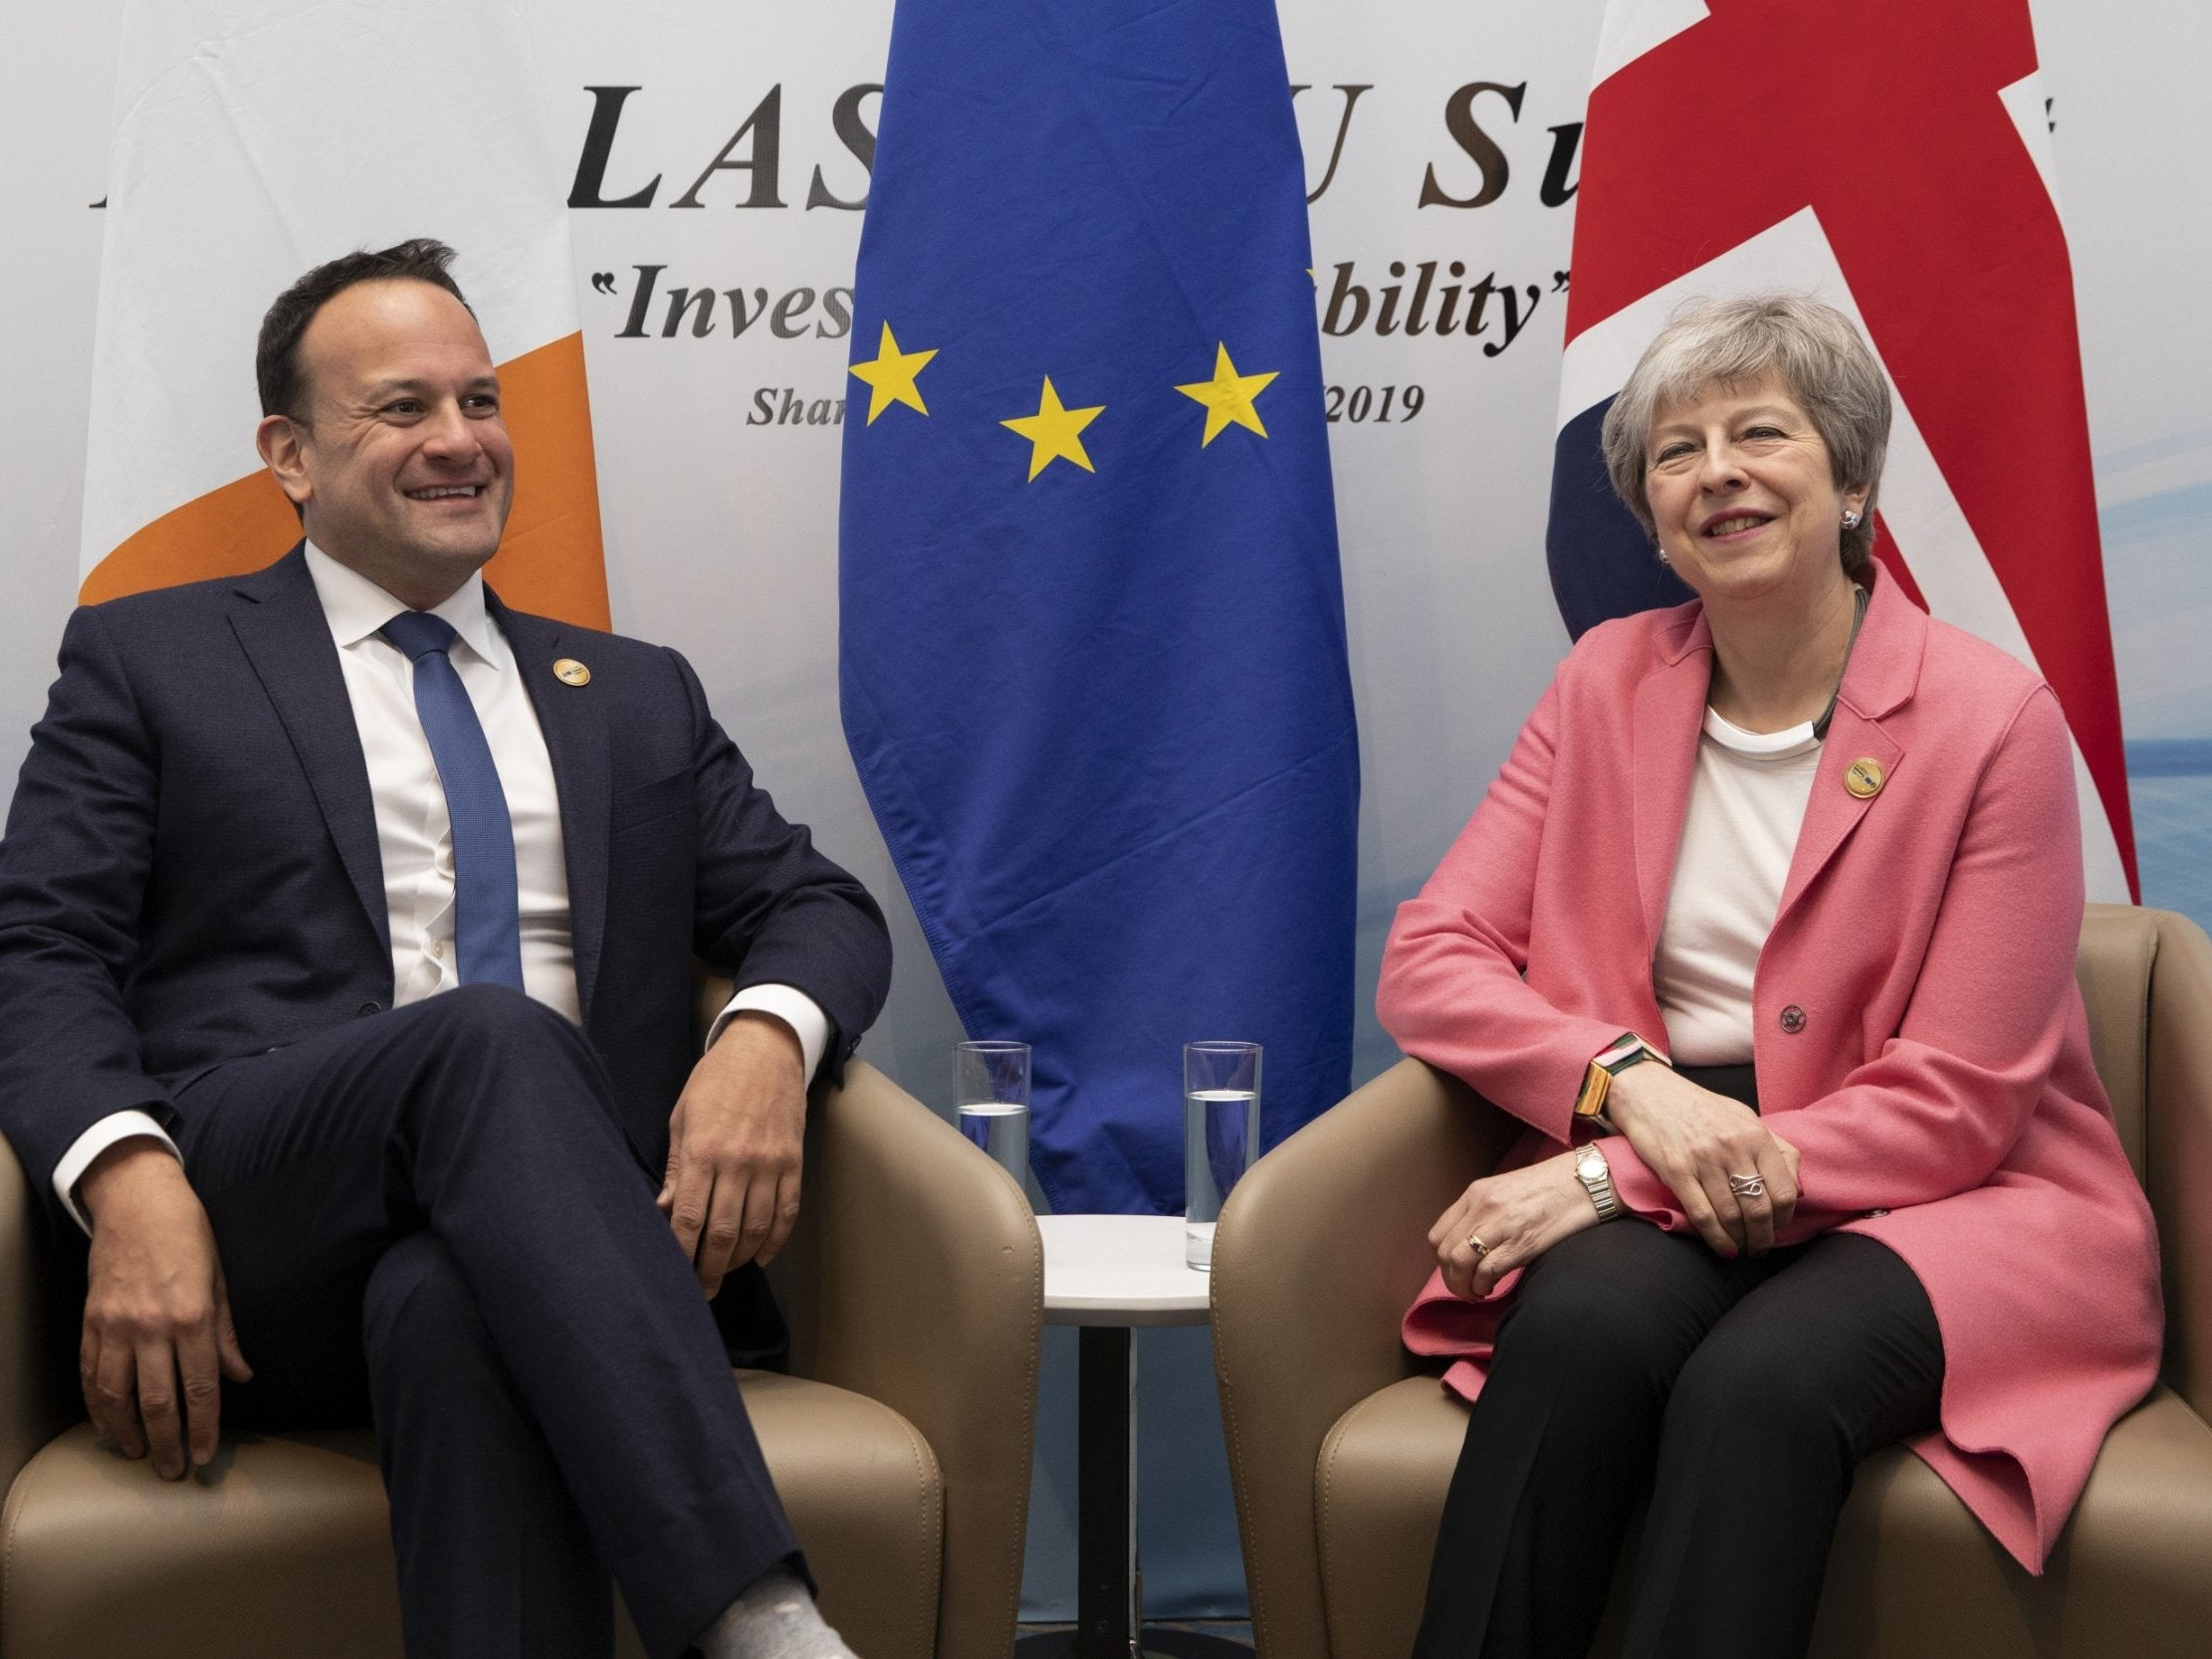 No-deal Brexit unlikely, says Irish prime minister